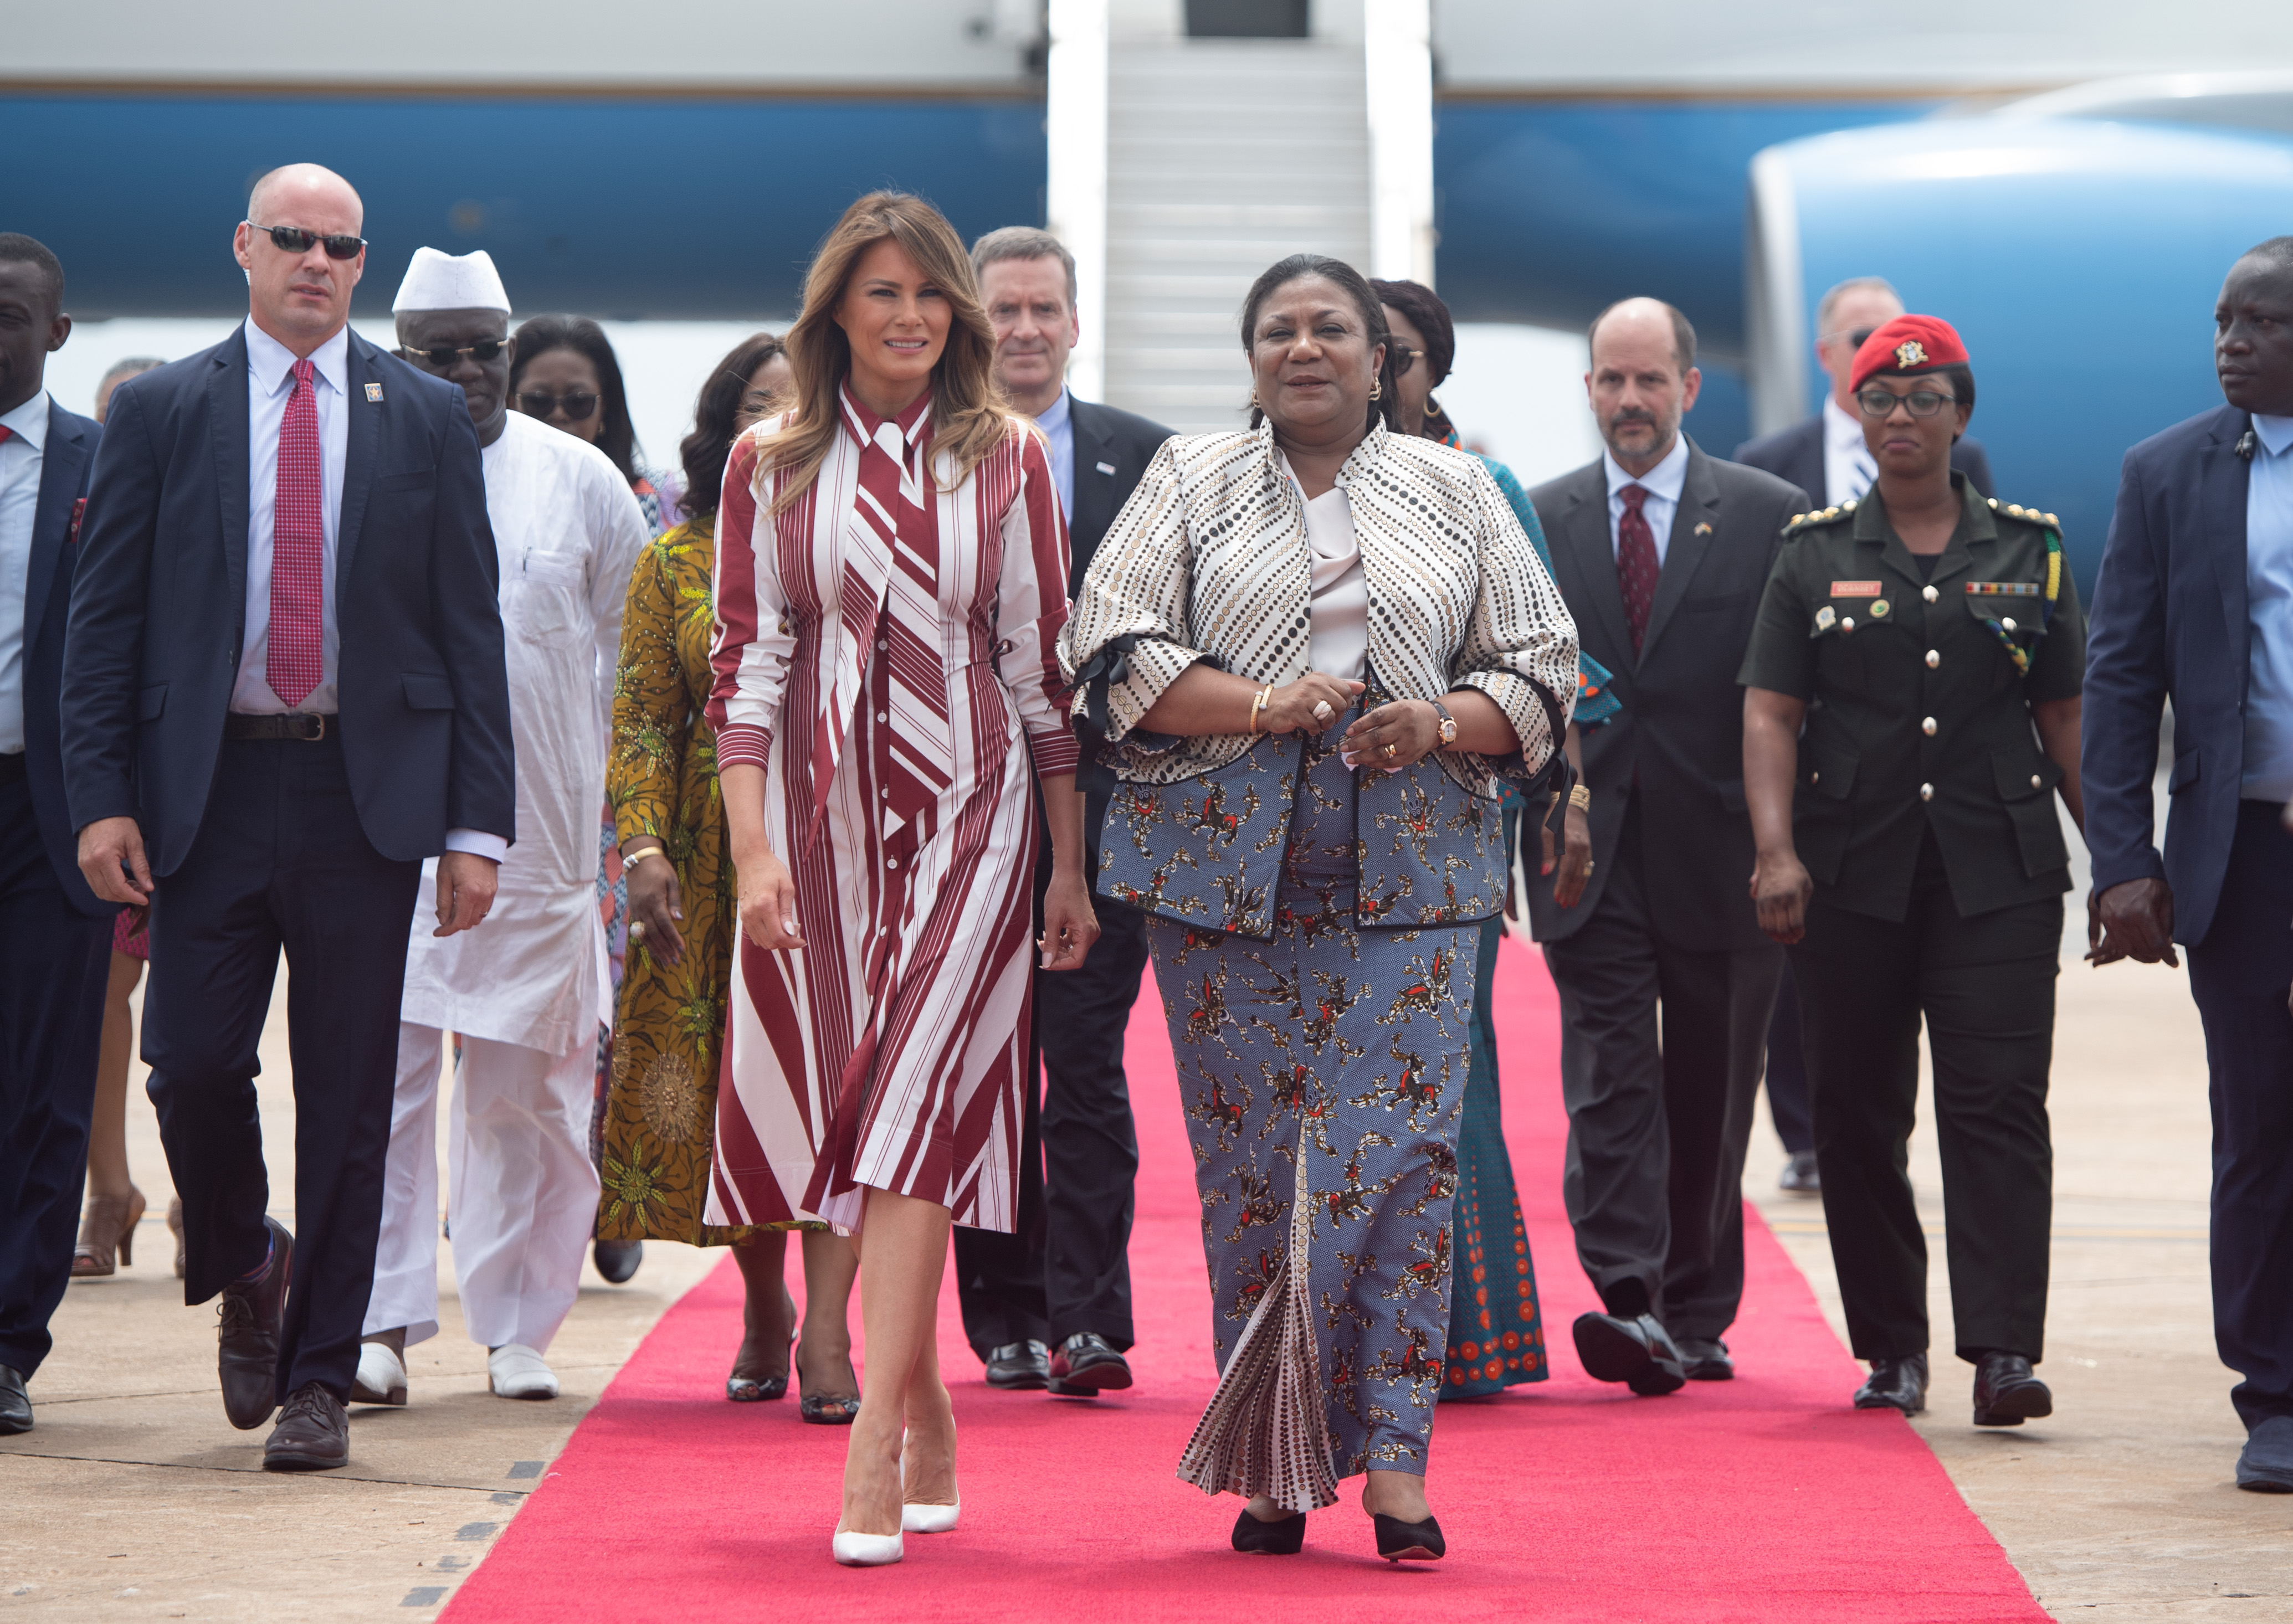 First lady Melania Trump walks alongside Rebecca Akufo-Addo, the First Lady of Ghana, during an arrival ceremony after landing at Kotoka International Airport in Accra October 2, 2018 as she begins her week long trip to Africa to promote her 'Be Best' campaign. (Photo: SAUL LOEB/AFP/Getty Images)